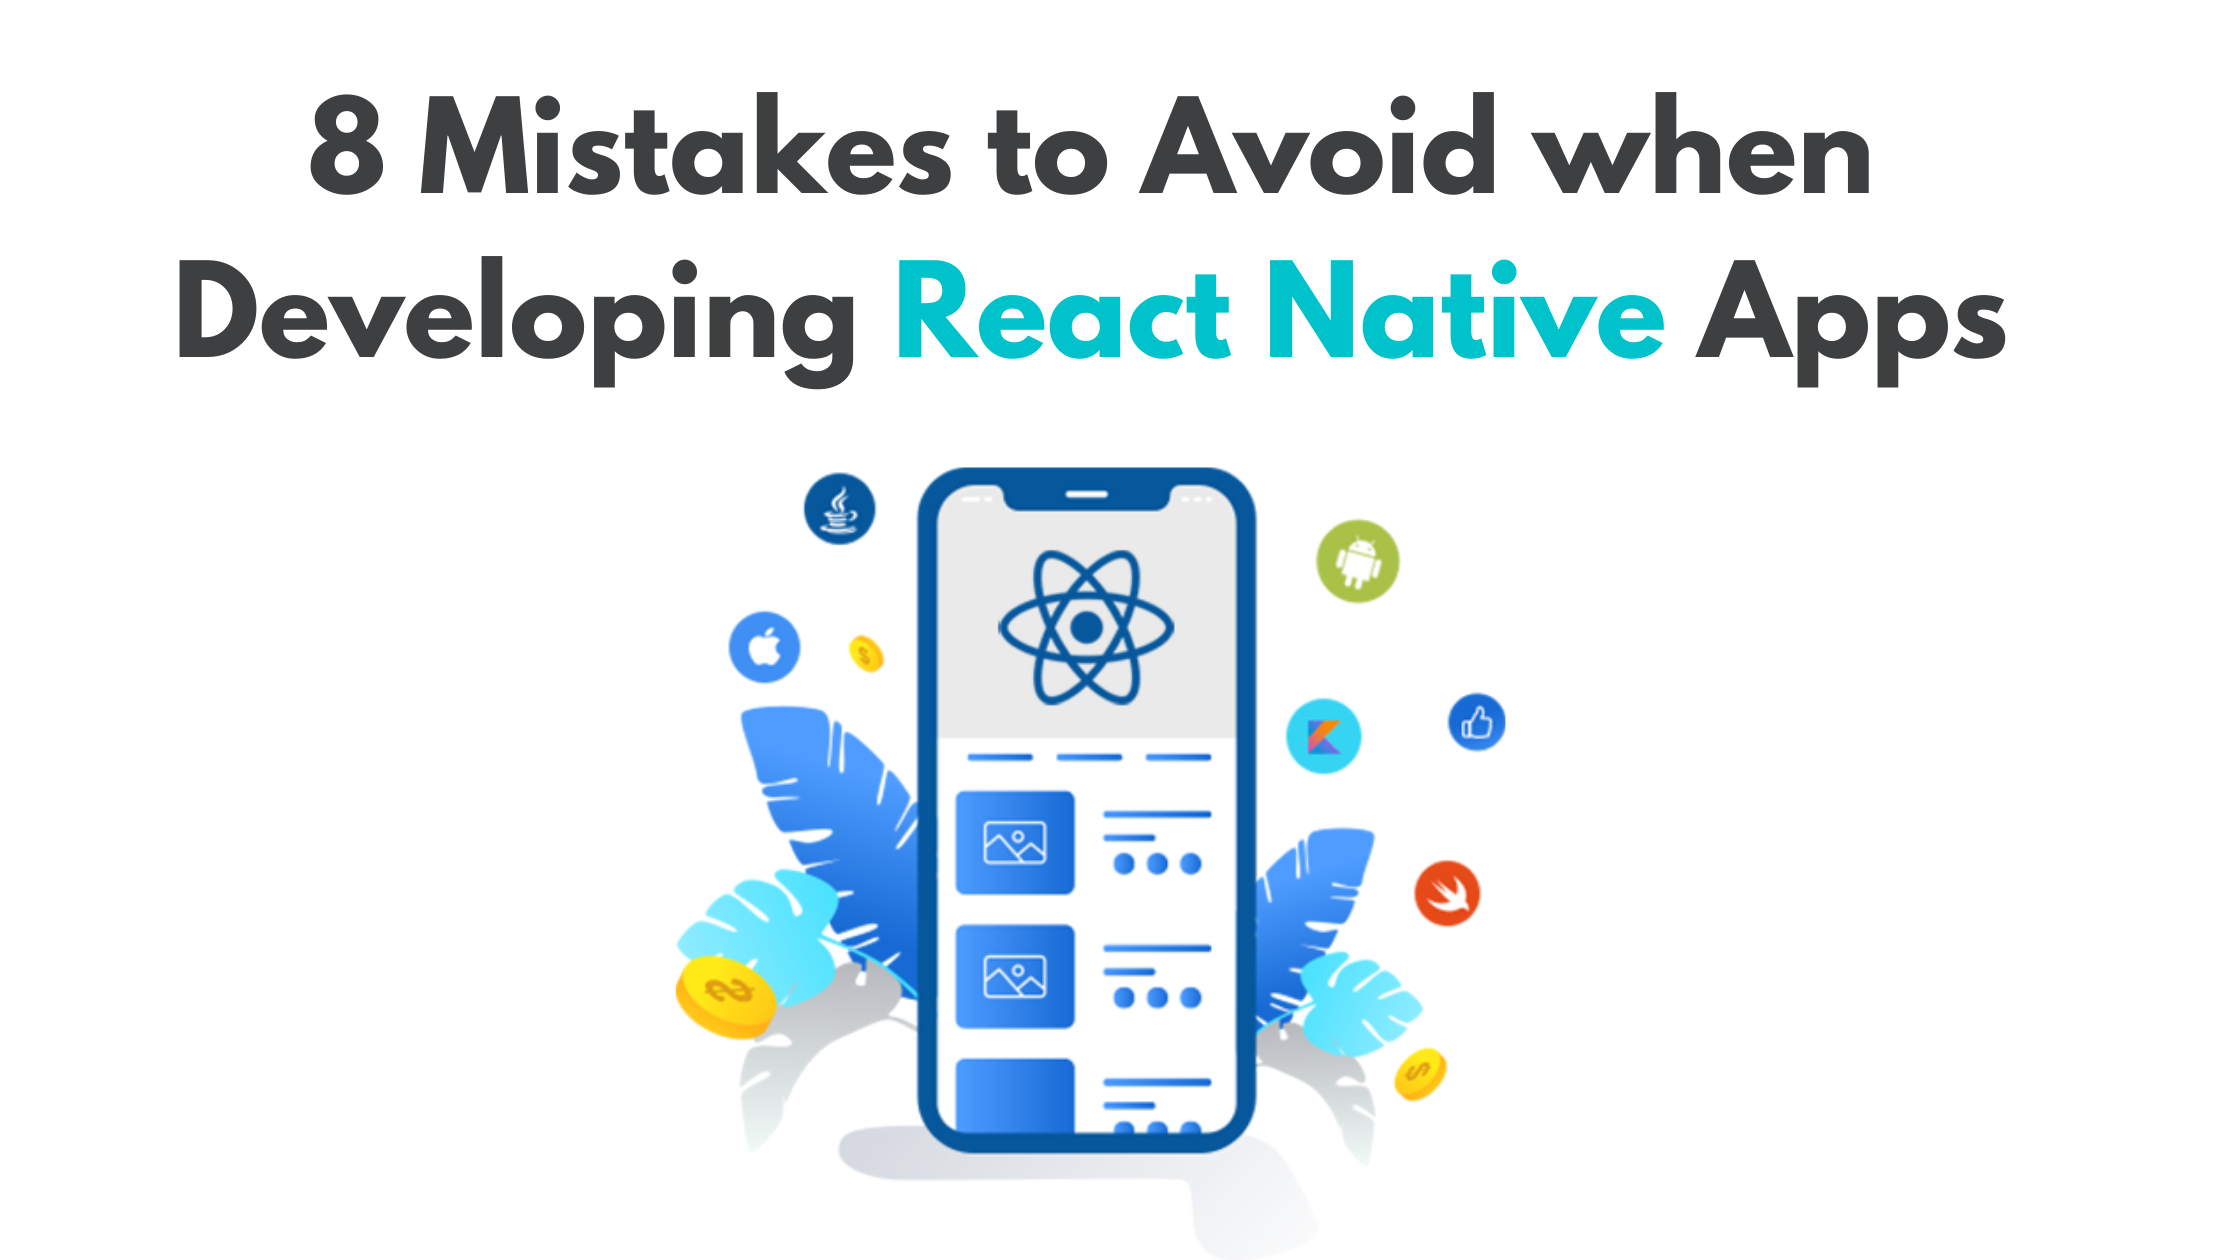 8 Mistakes to Avoid When Developing React Native Apps